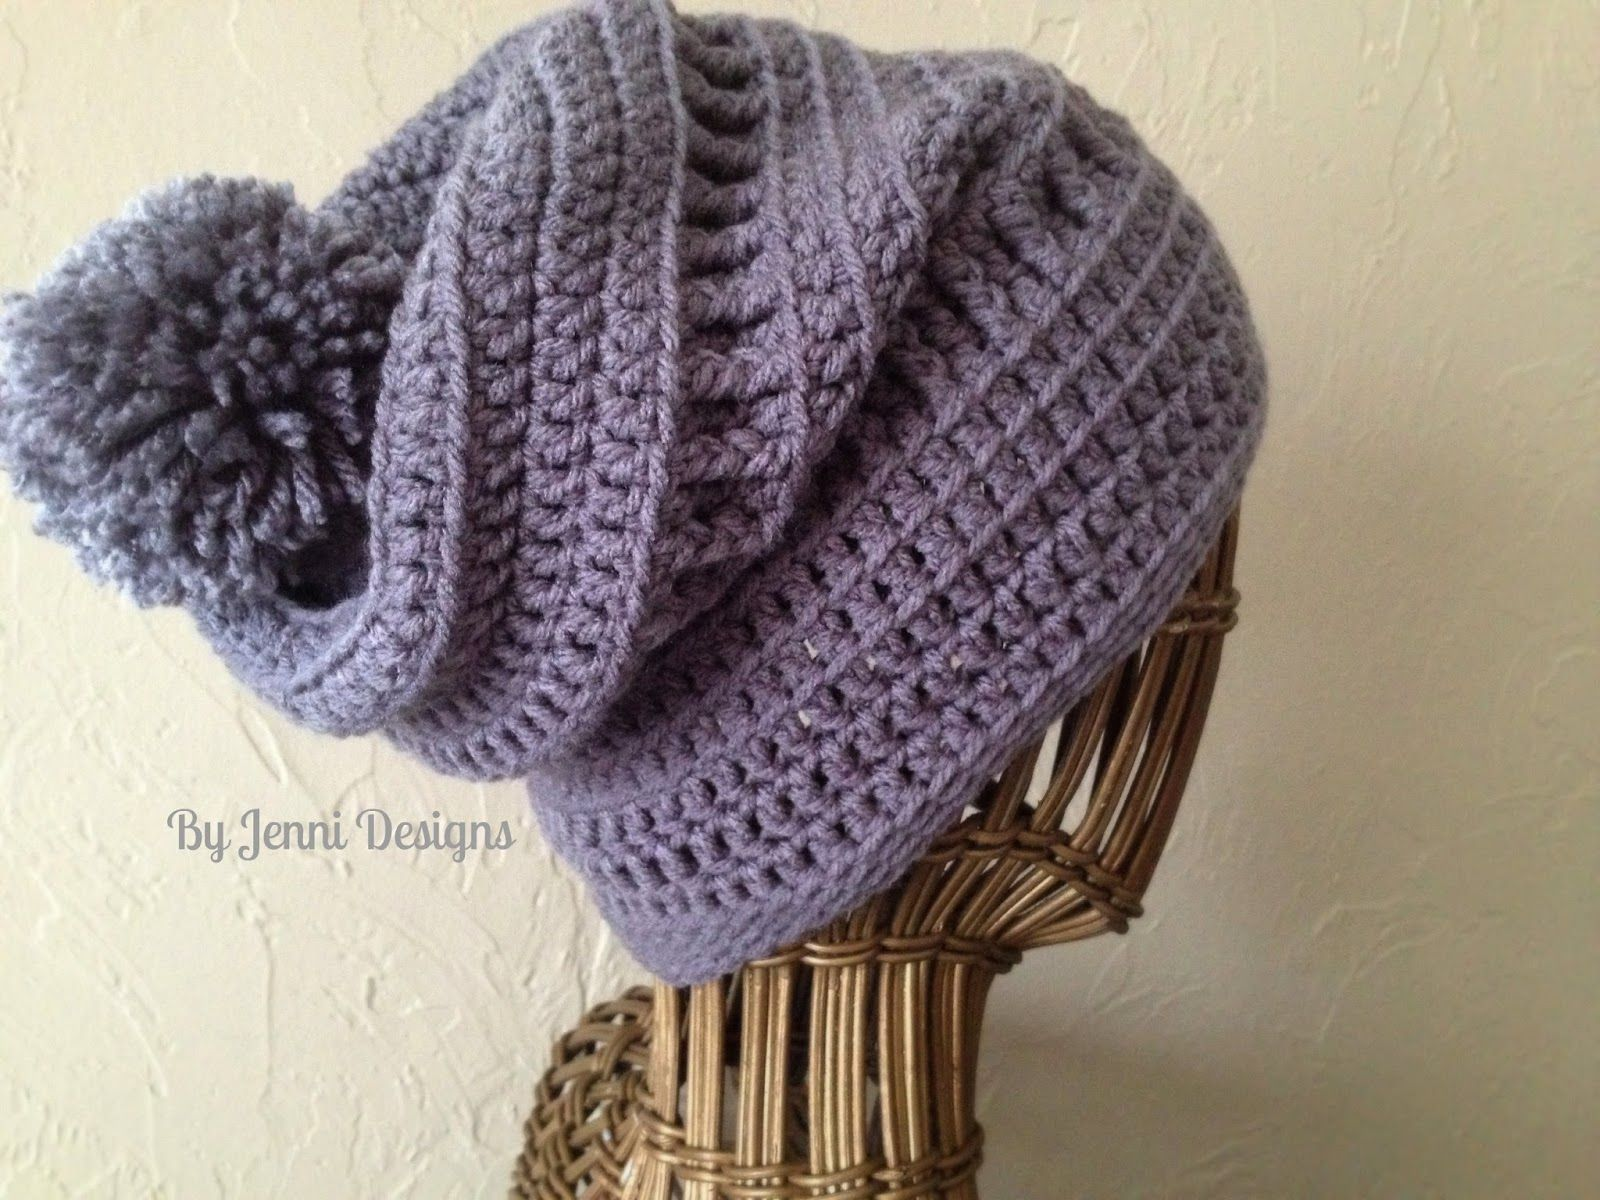 By jenni designs free crochet pattern womens slouchy textured by jenni designs free crochet pattern womens slouchy textured beanie bankloansurffo Image collections